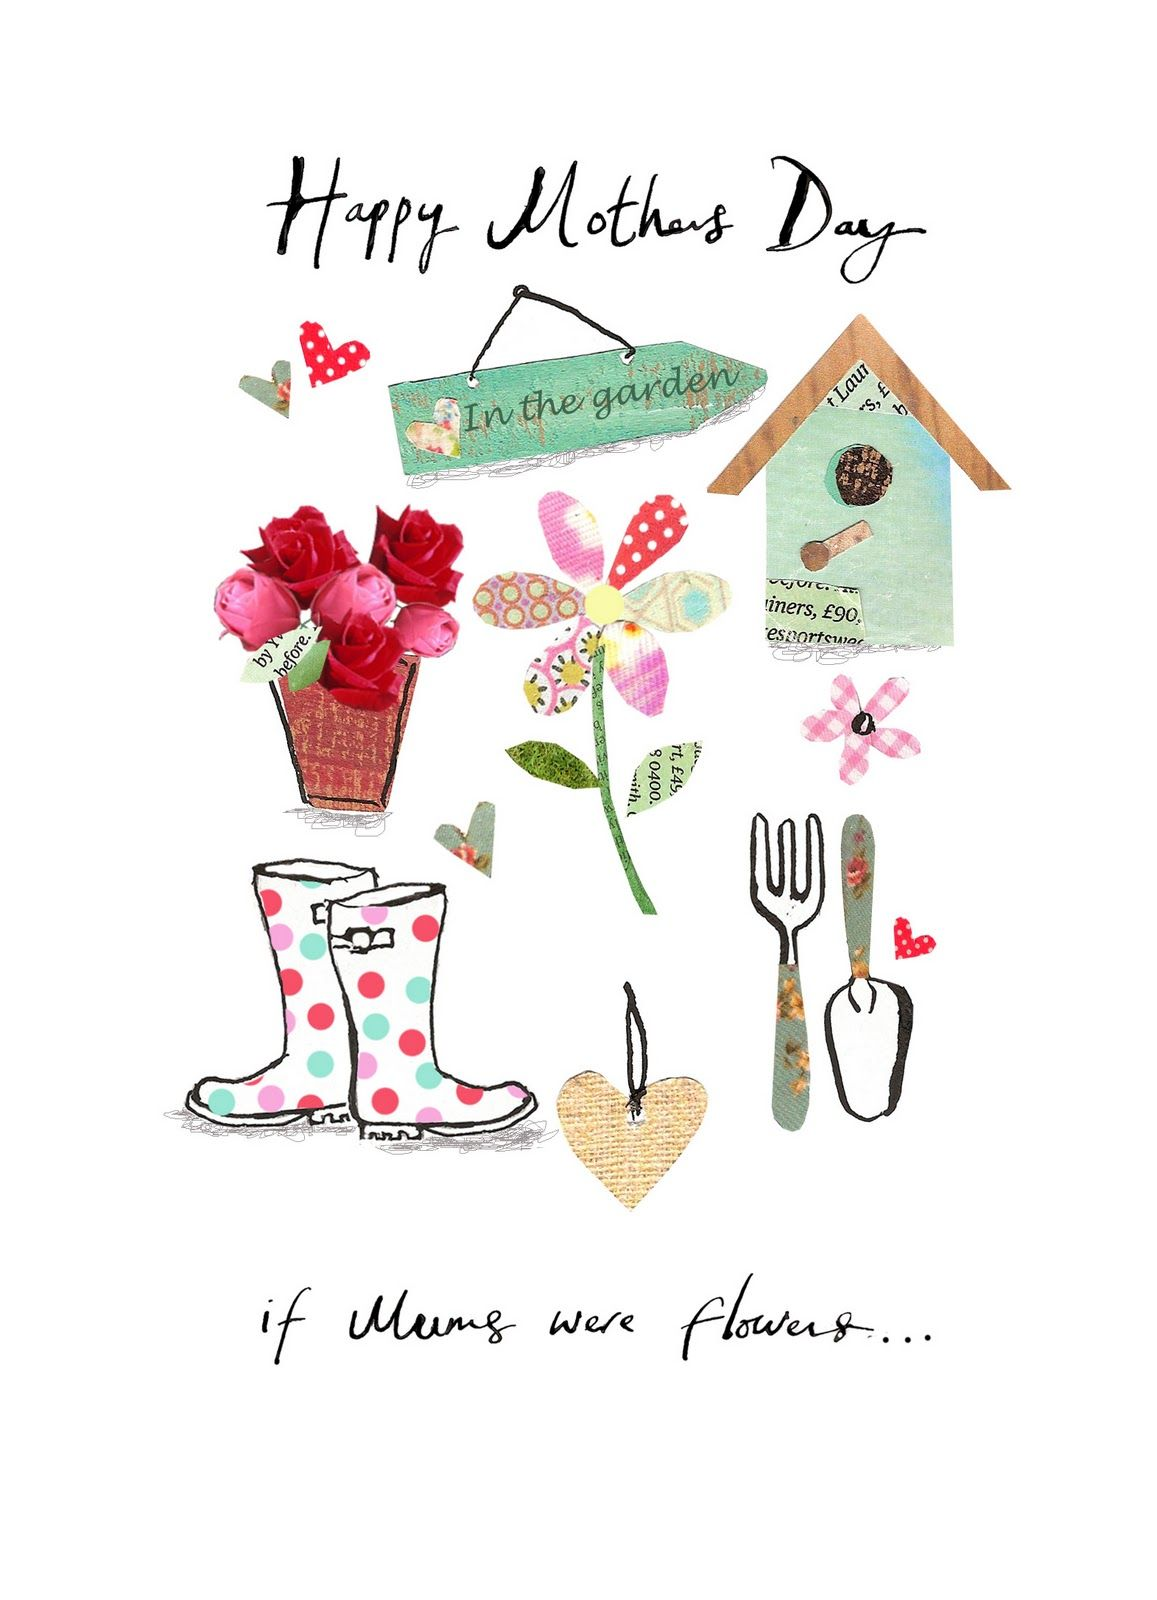 Clare fennell illustration mothers day card in marks and clare fennell illustration mothers day card in marks and spencers kristyandbryce Image collections